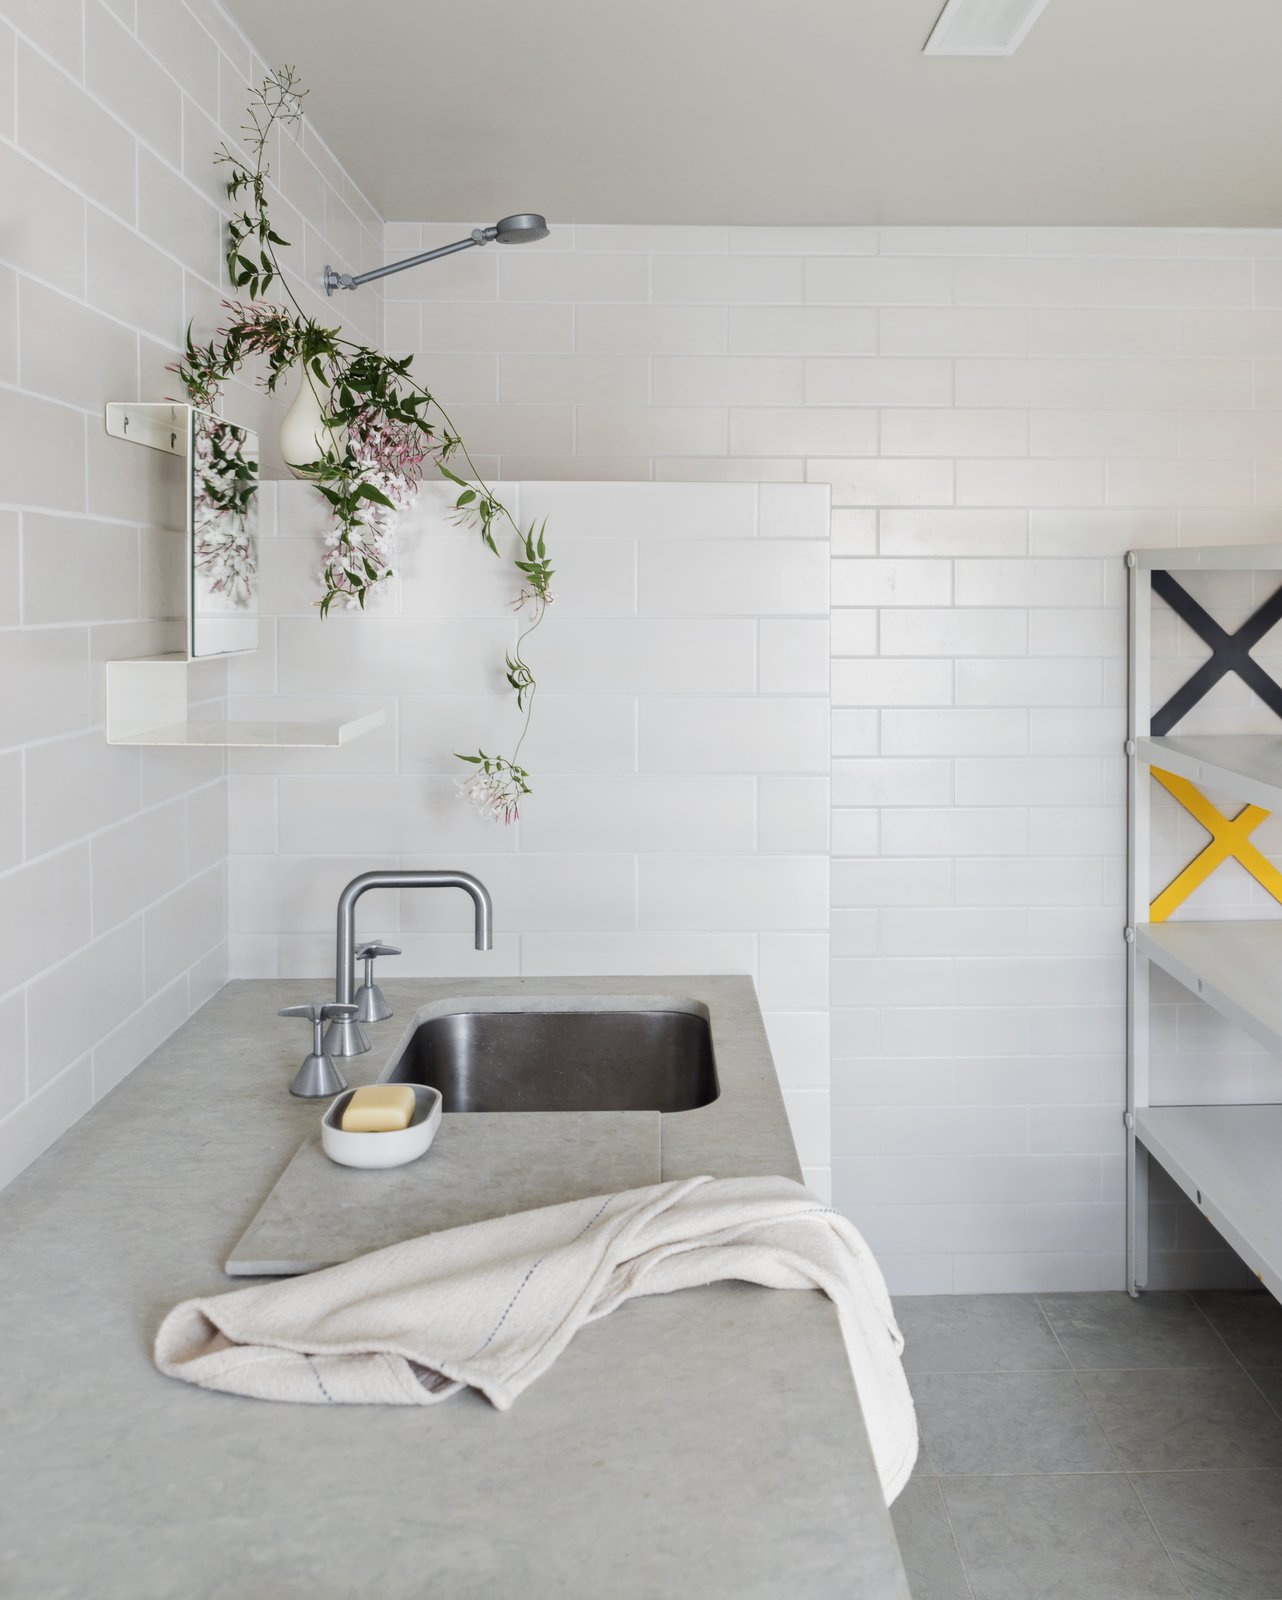 Concrete Counter, Bath Room, Concrete Floor, Open Shower, Undermount Sink, Subway Tile Wall, and Ceramic Tile Wall  Photo 10 of 13 in Stay in a Riverside Vacation Home That Embraces the Australian Bush